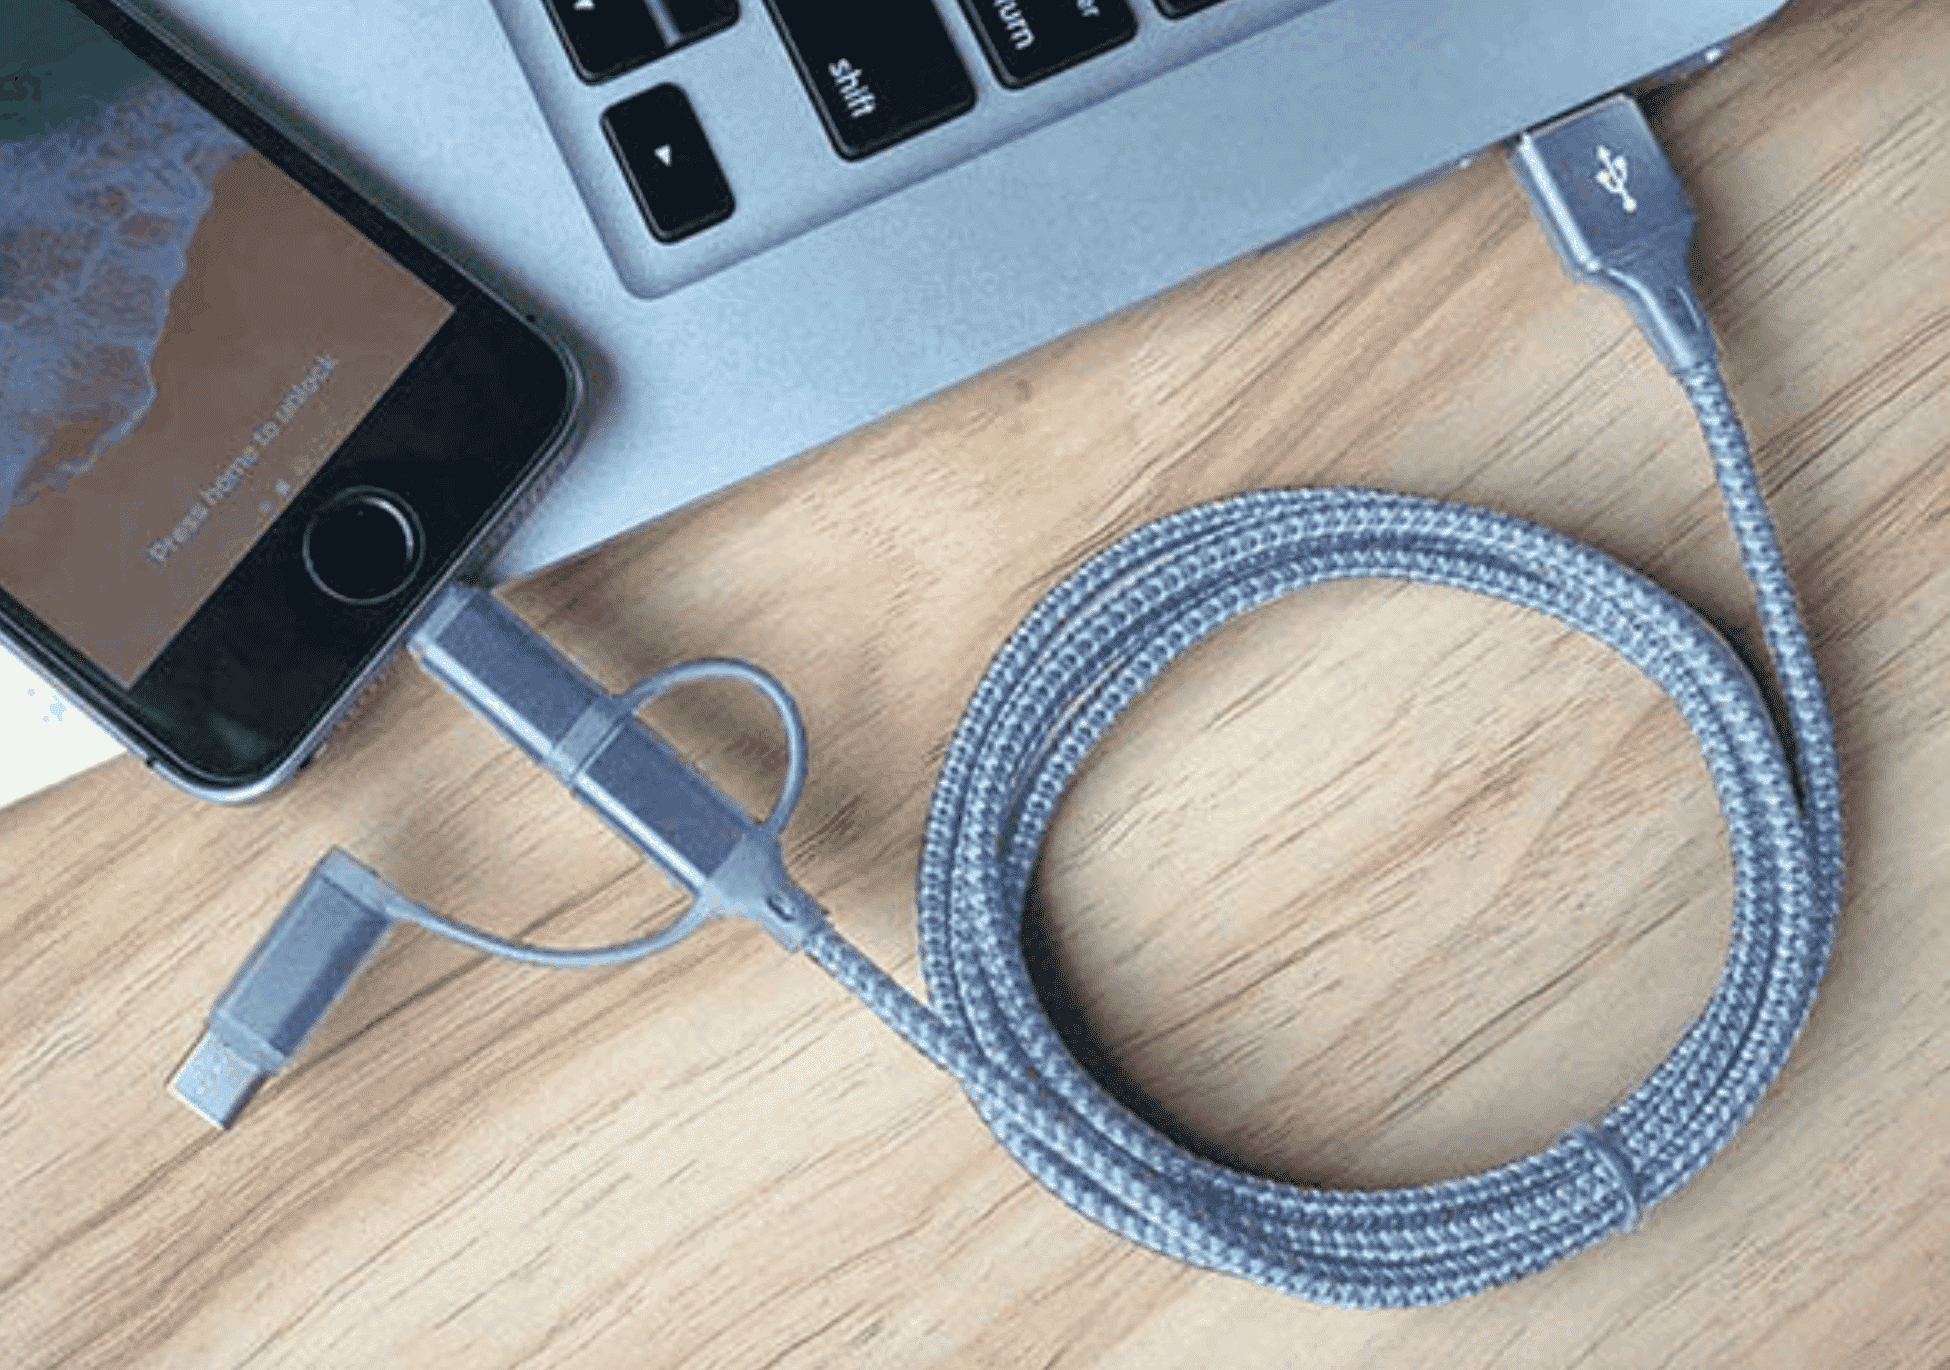 FuelBox LightSpeed Charging Cable